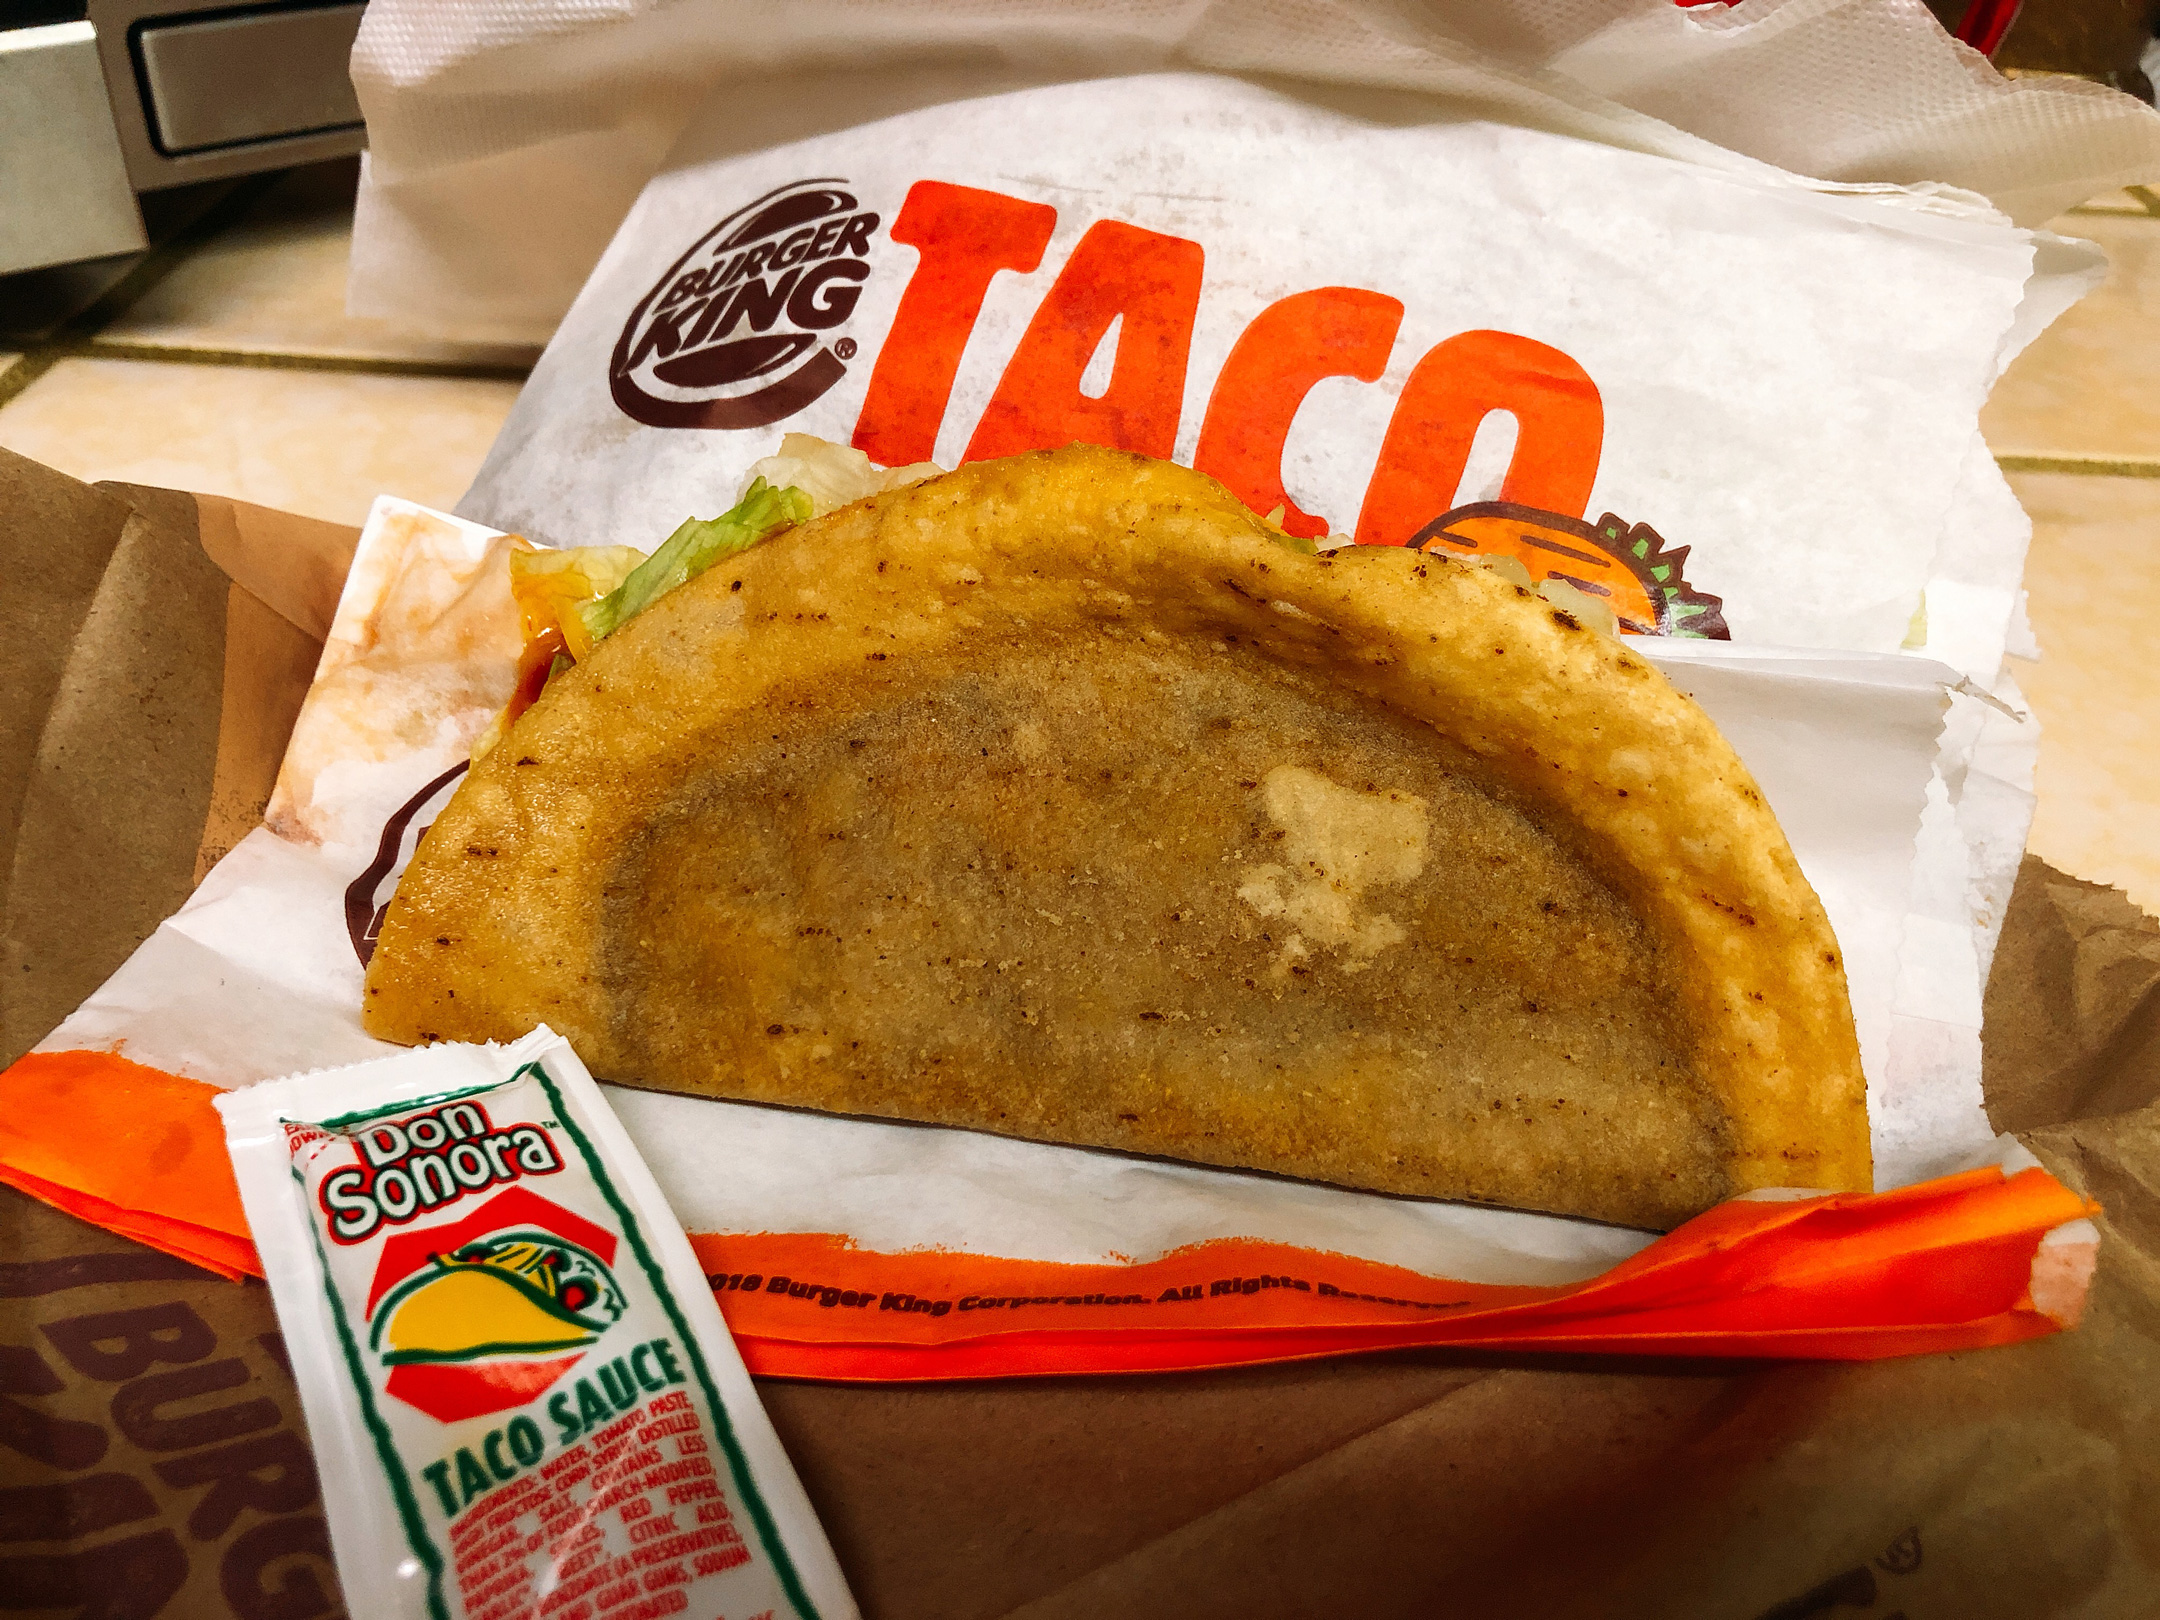 Burger King Taco